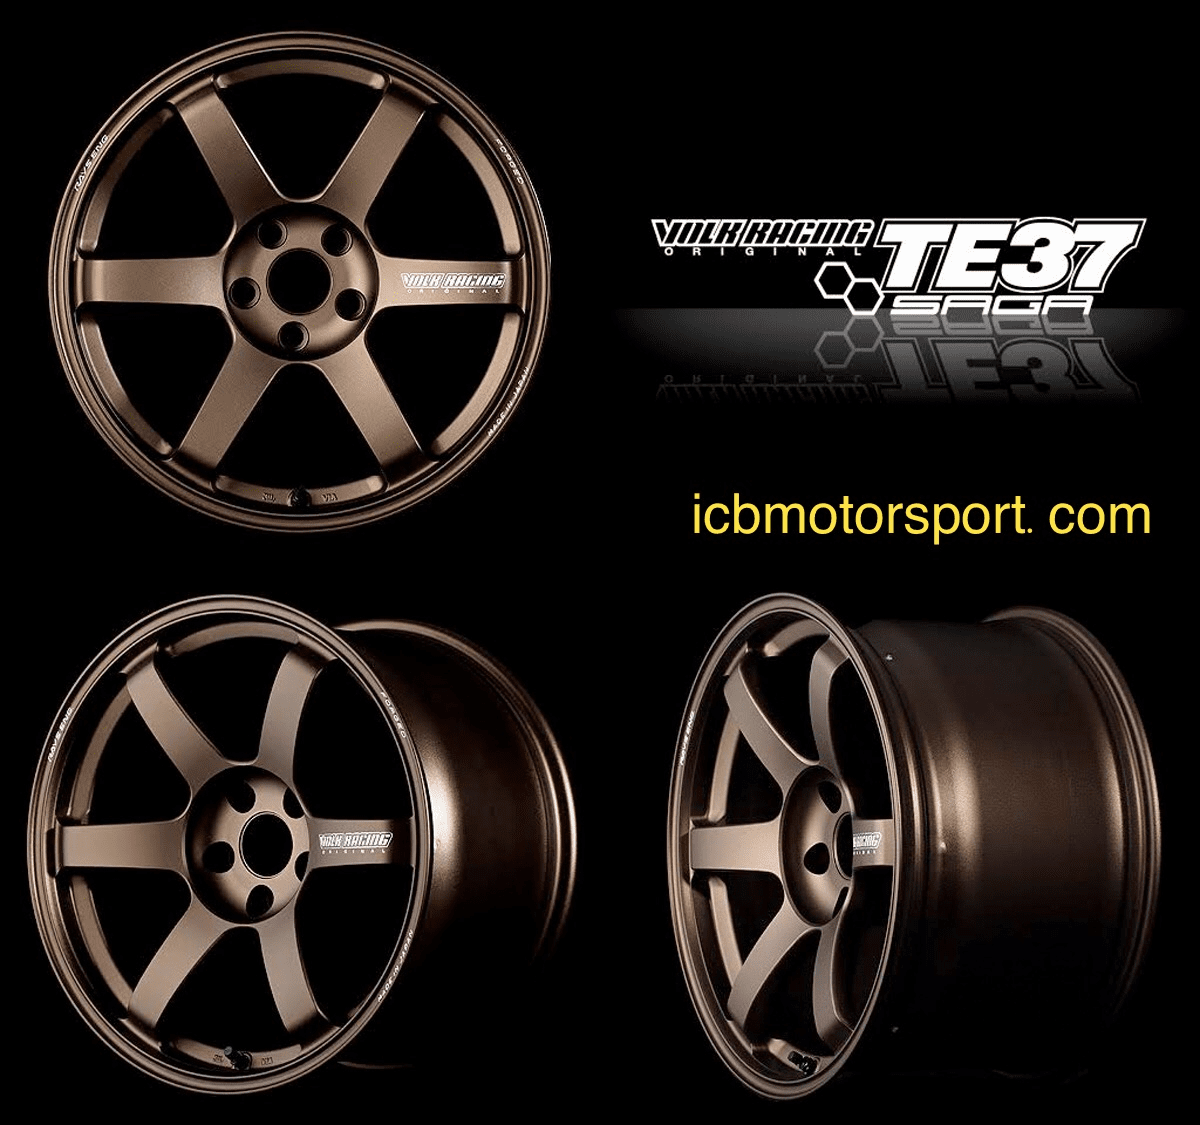 Rays Volk Racing TE37 SAGA Wheels 18X9/9.5/10/10.5 5X120 Bronze/Diamond Dark Gunmetal Civic FK8 CTR Type R Free Shipping Pre-Order